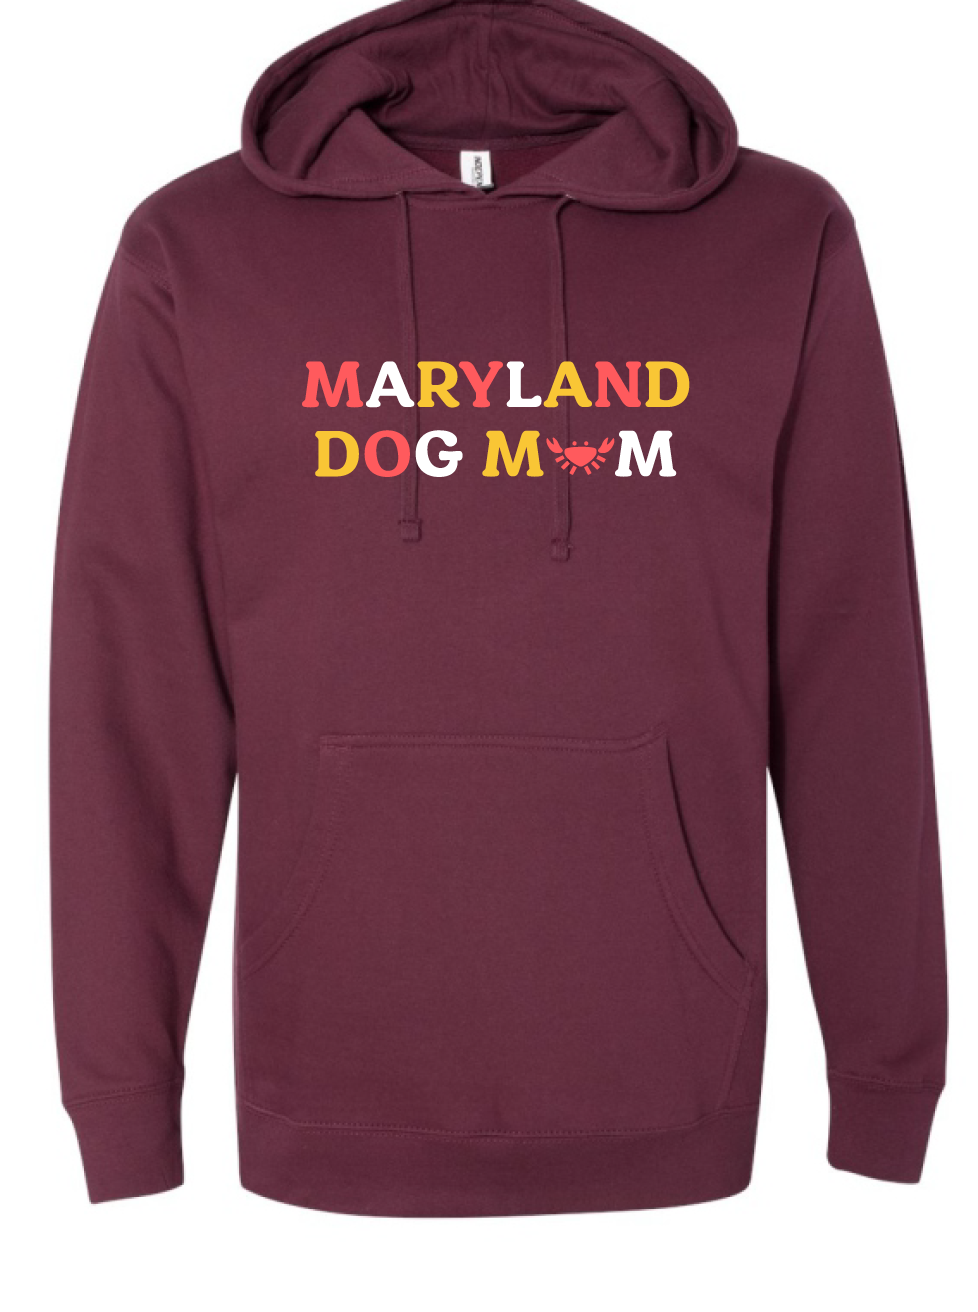 Maryland Dog Mom Hoodie